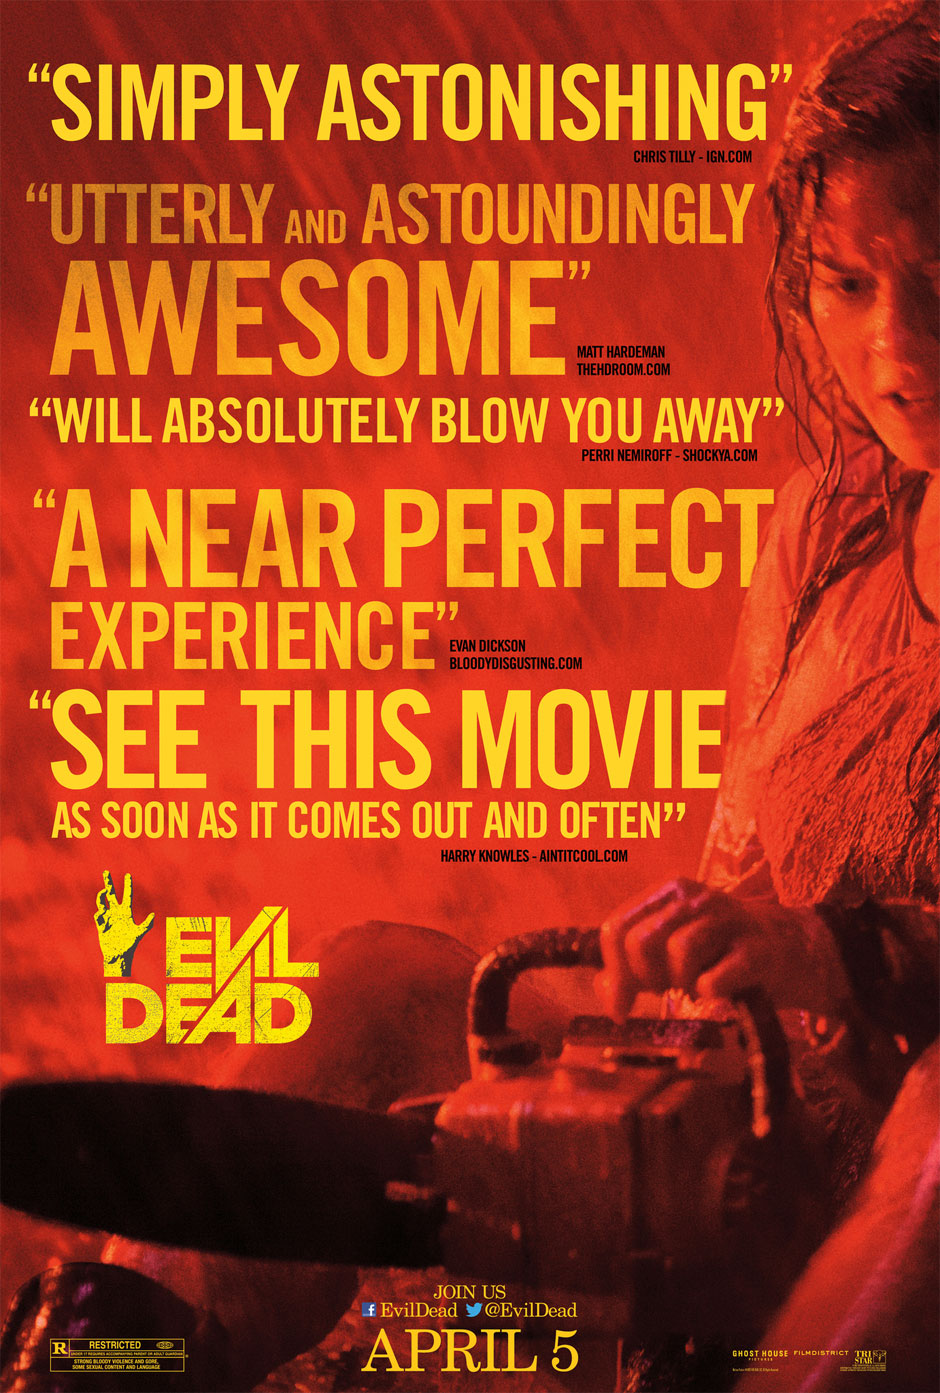 dae4d__Evil-Dead-2013-Movie-Poster1.jpg